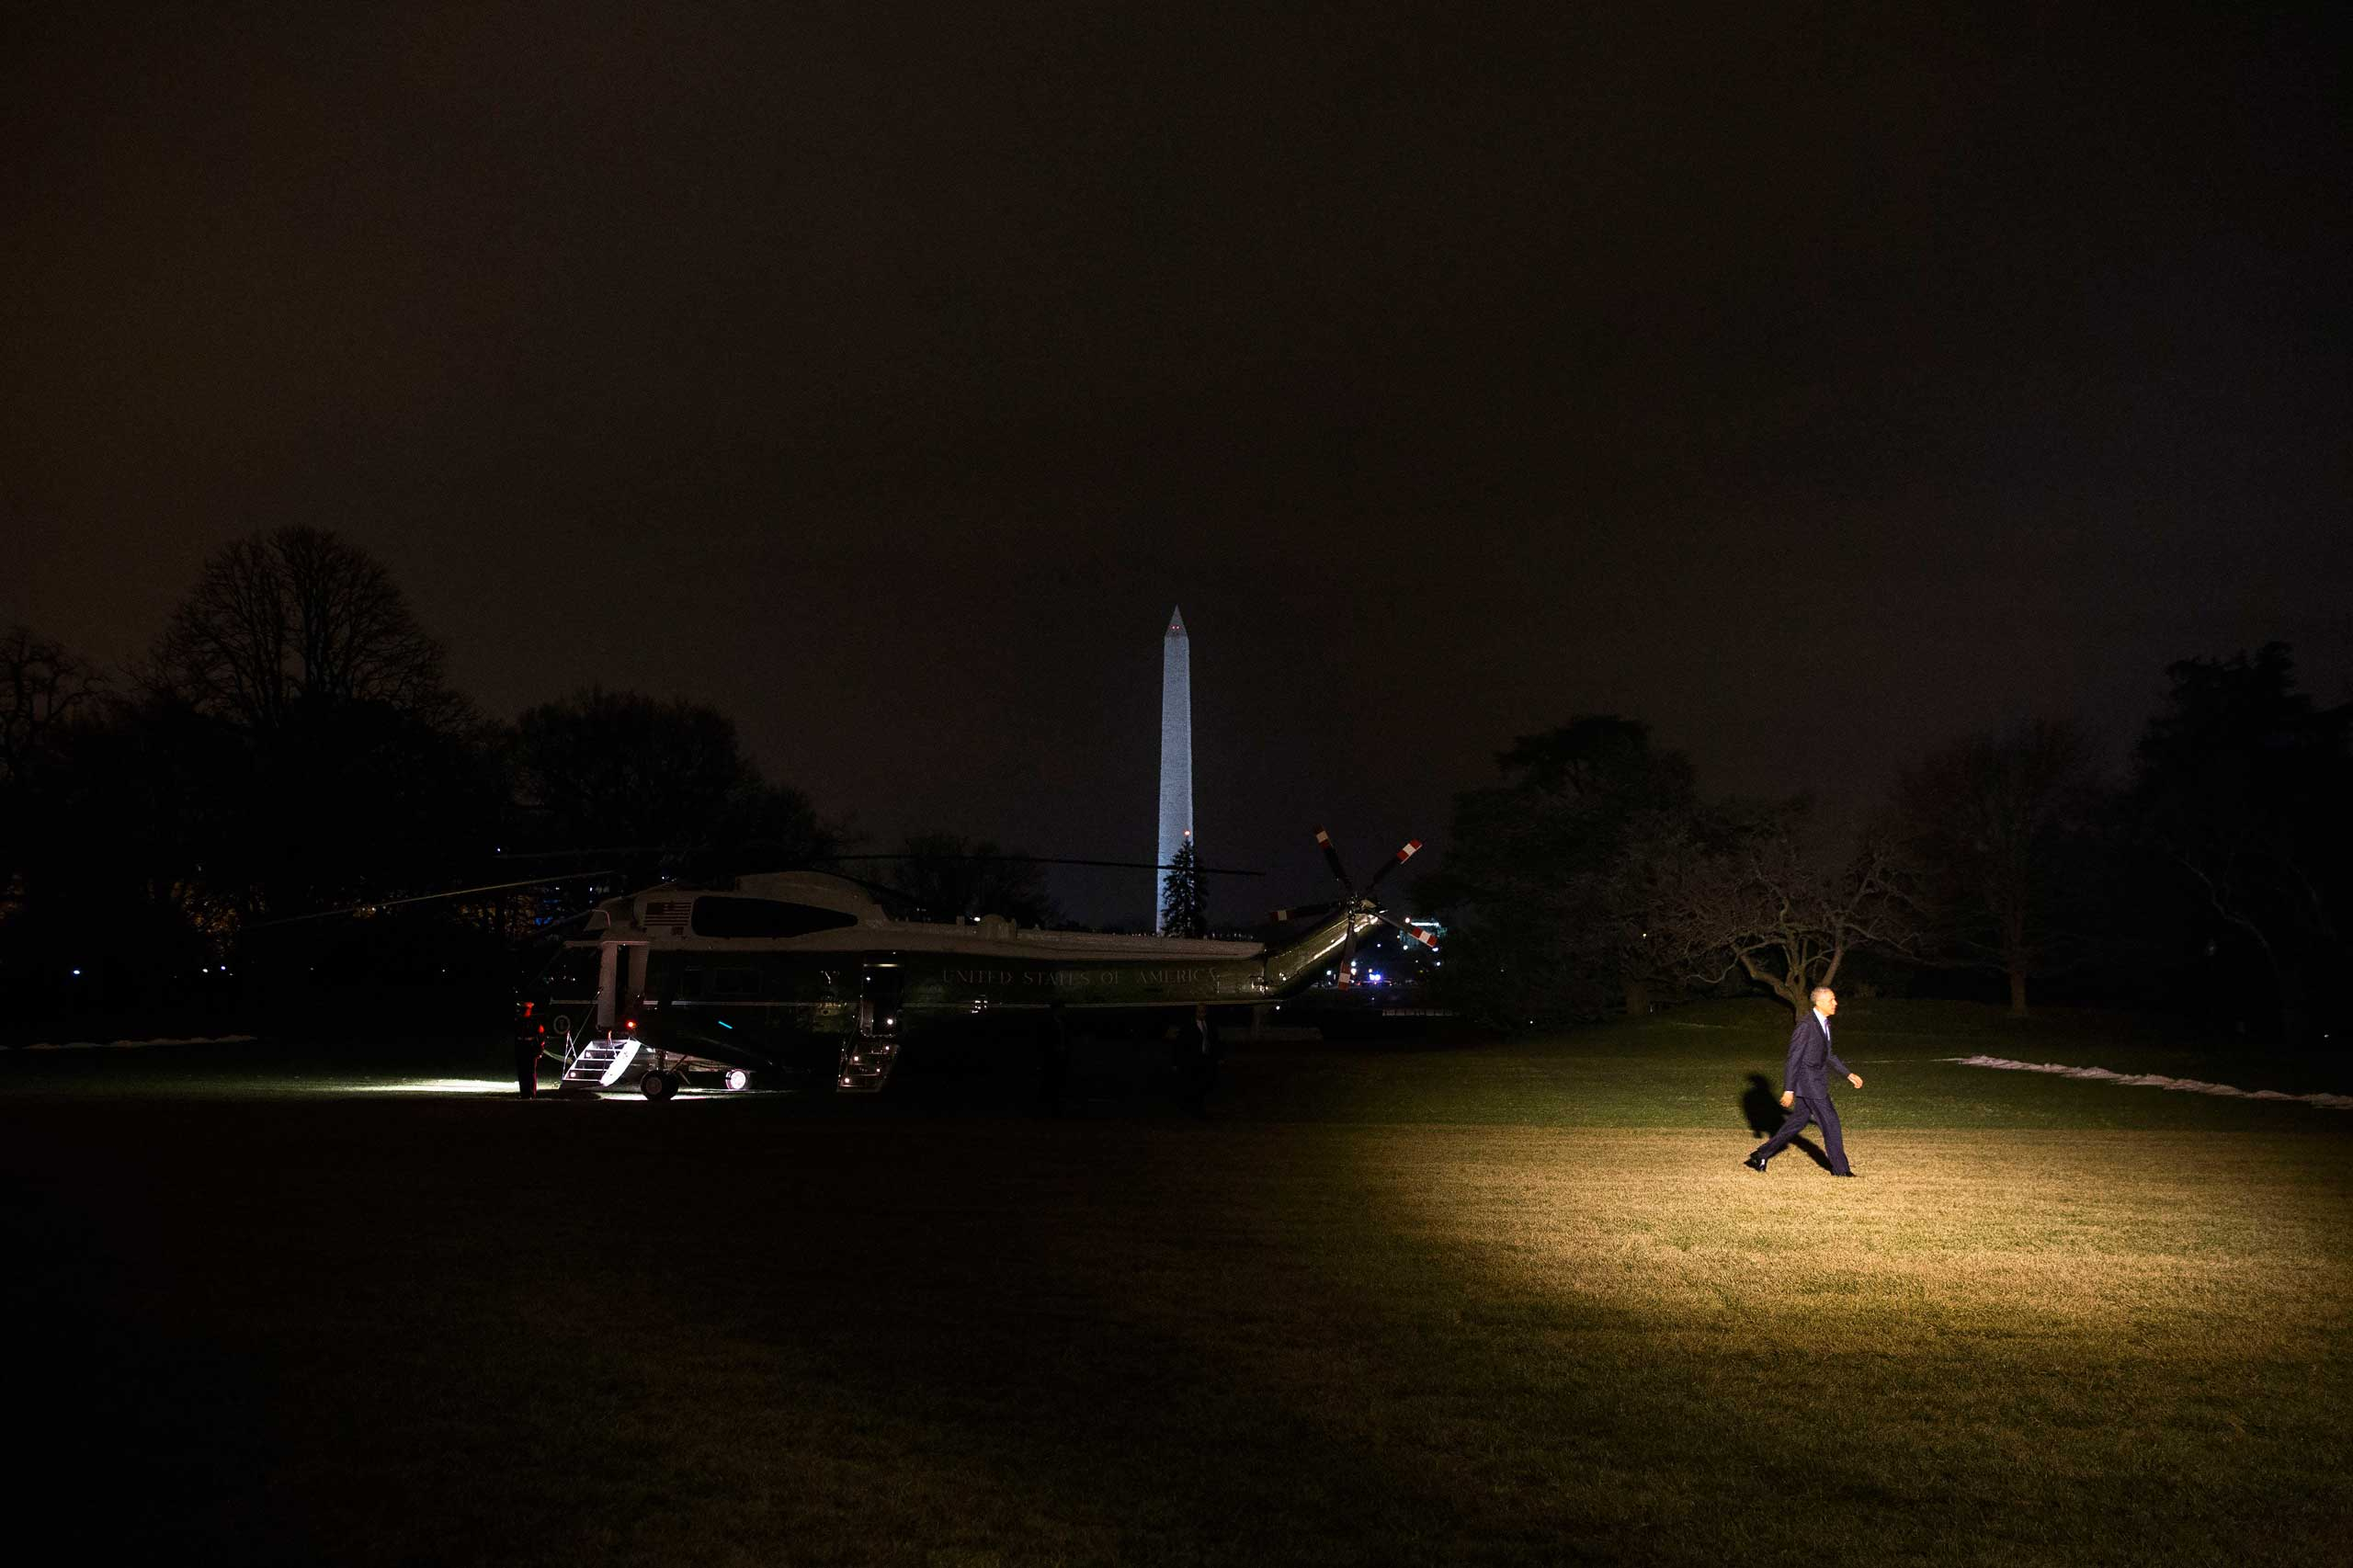 Jan. 14, 2015. President Barack Obama arrives on the South Lawn of the White House in Washington, D.C. after a day trip to Cedar Falls, Iowa to deliver a speech on increasing access to affordable high-speed broadband.